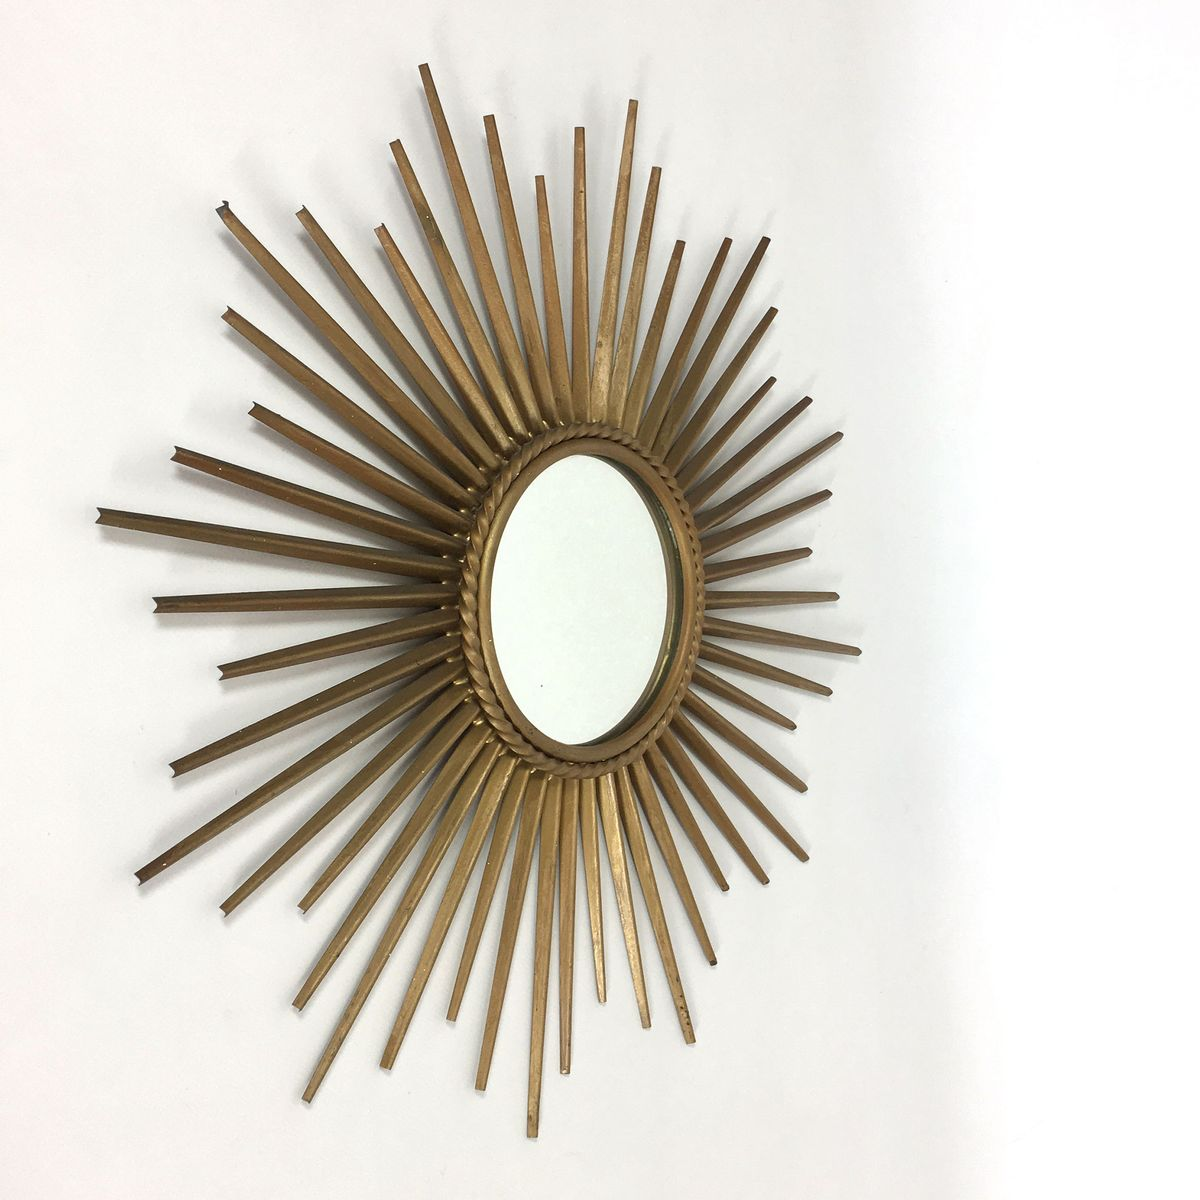 Sunburst sputnik mirror from chaty vallauris 1950s for for Chaty vallauris miroir